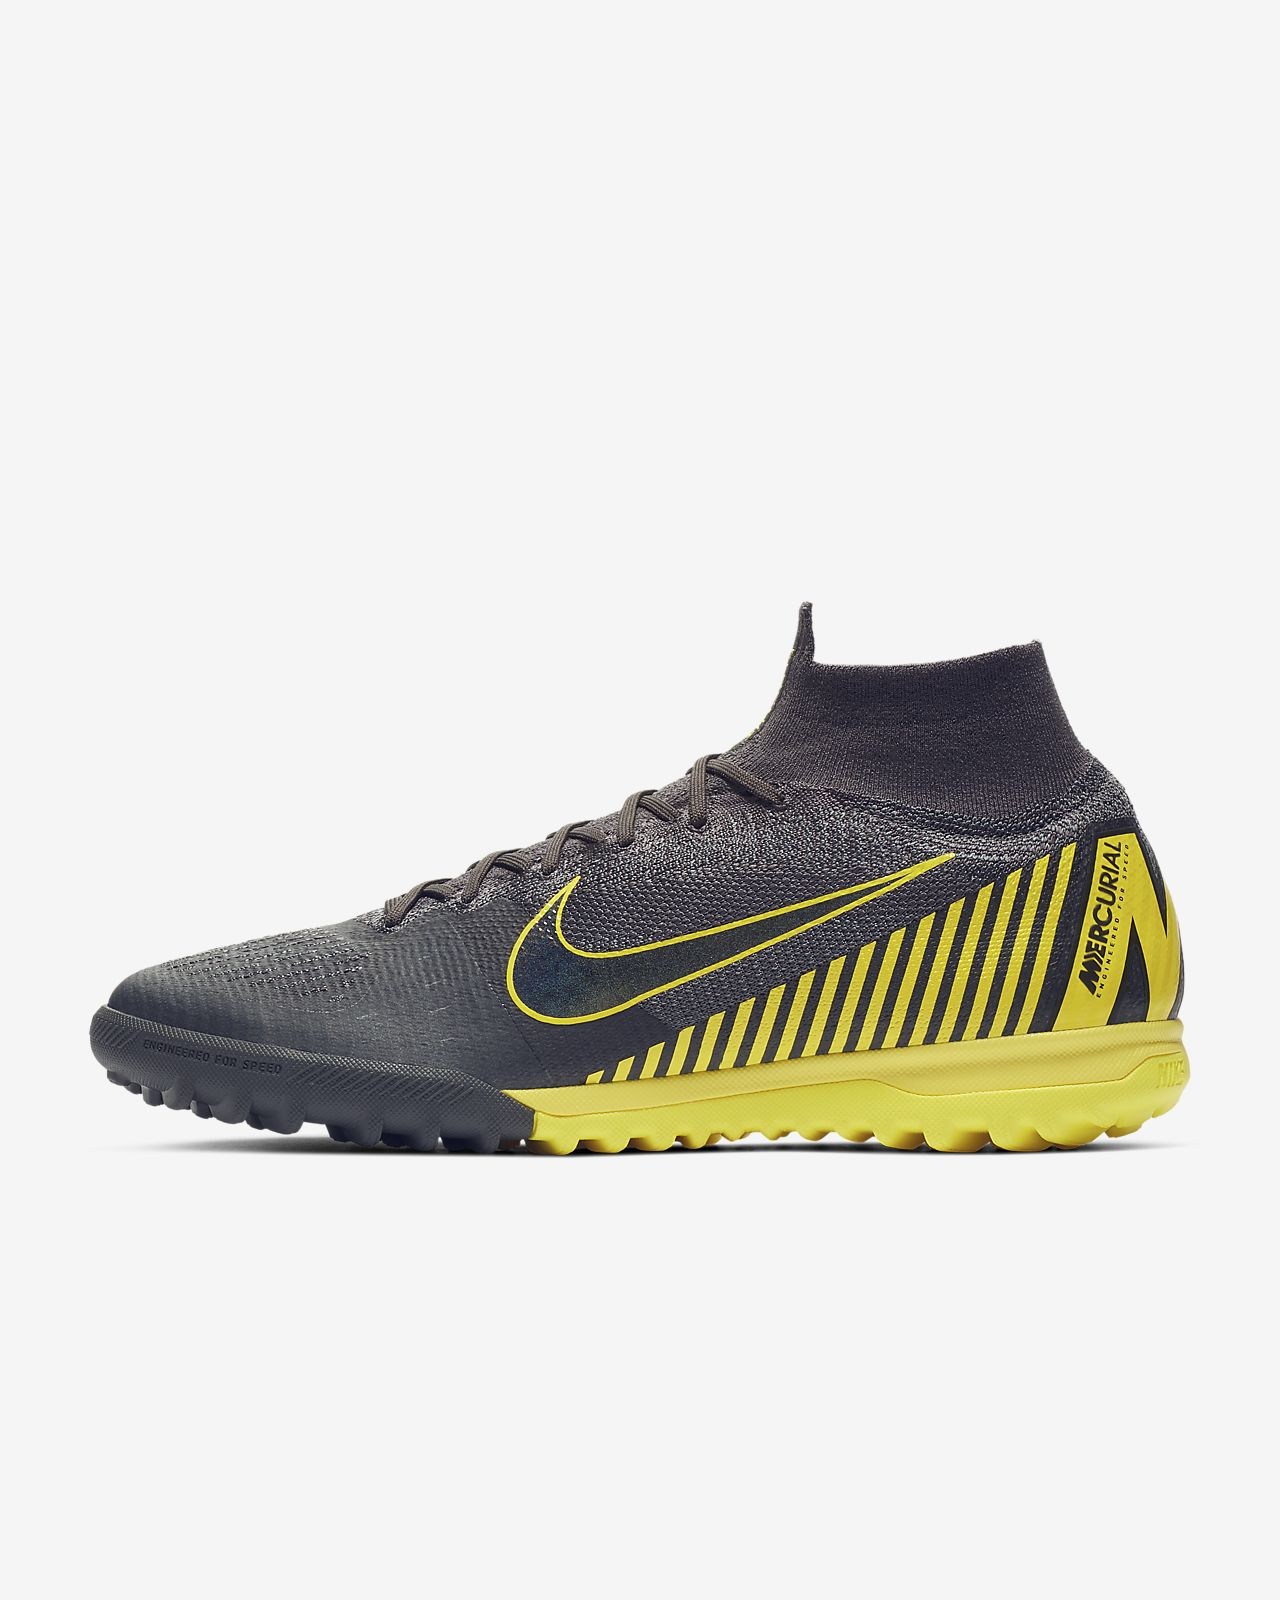 best website 434c6 c8065 Artificial-Turf Football Boot. Nike SuperflyX 6 Elite TF Game Over